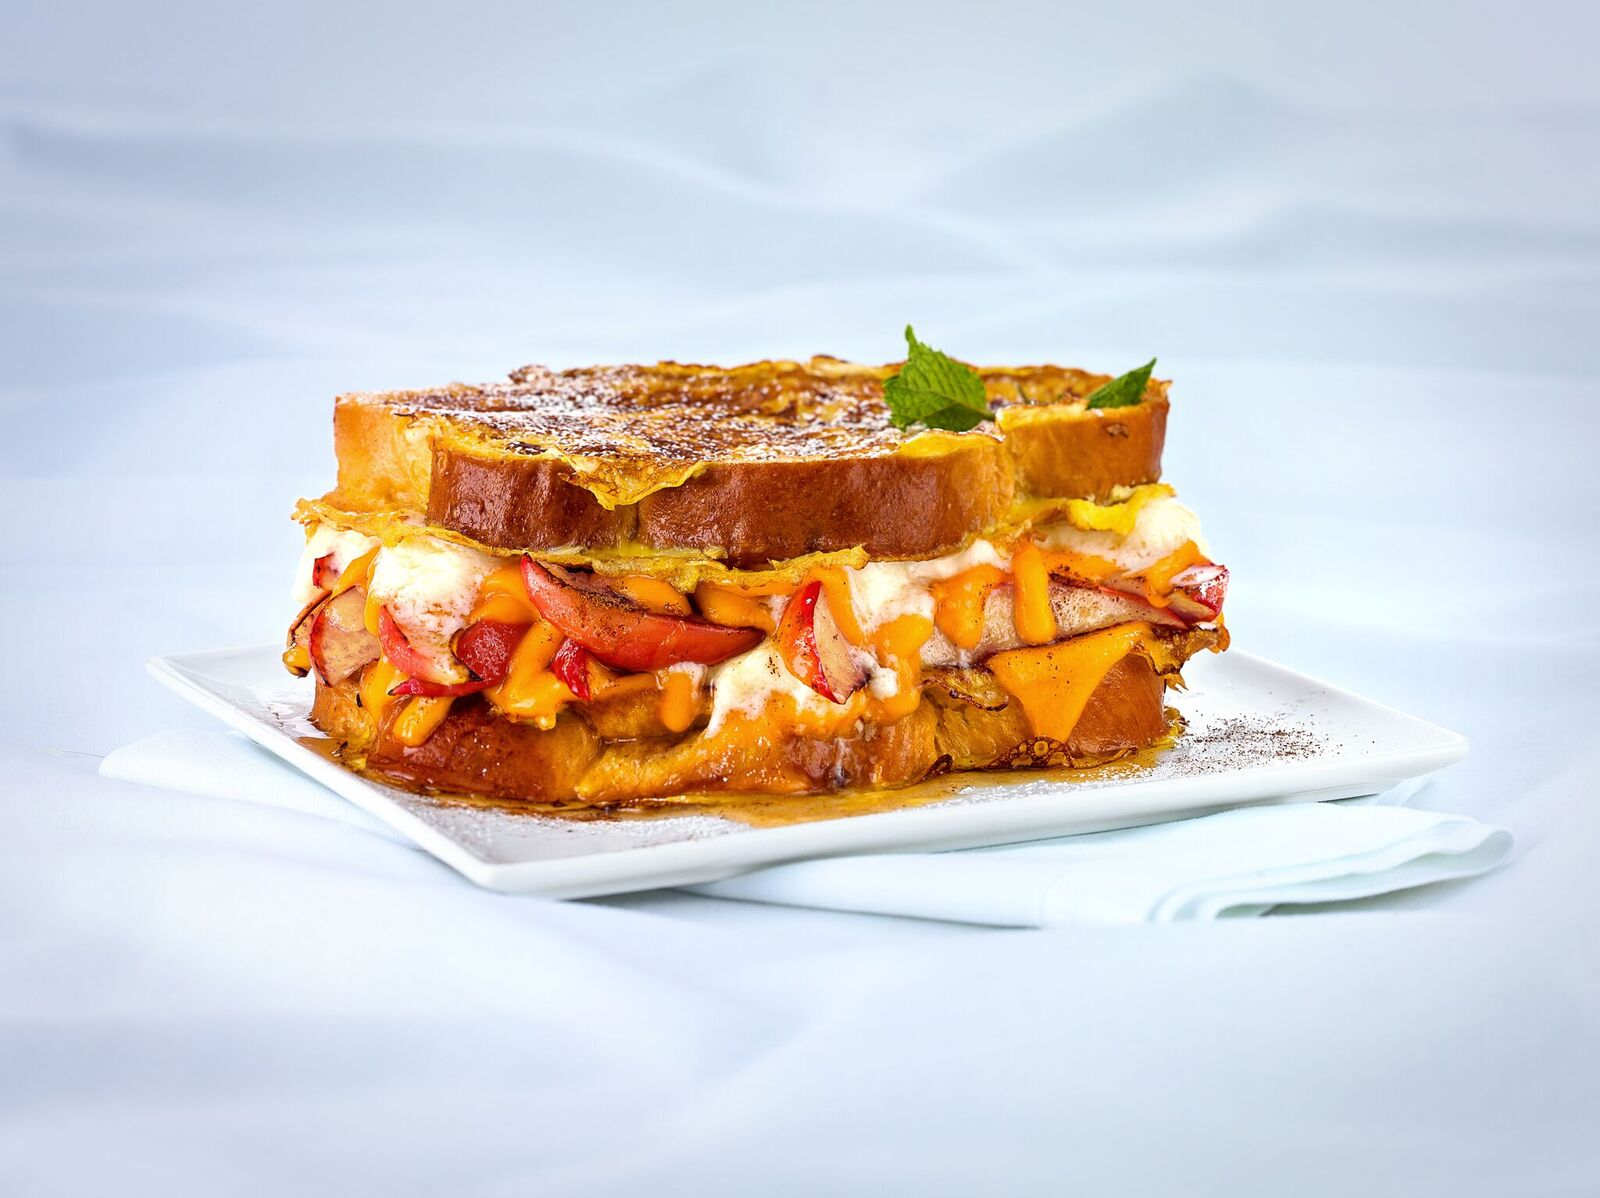 How to Make a $15,000 Award-Winning Grilled Cheese Sandwich